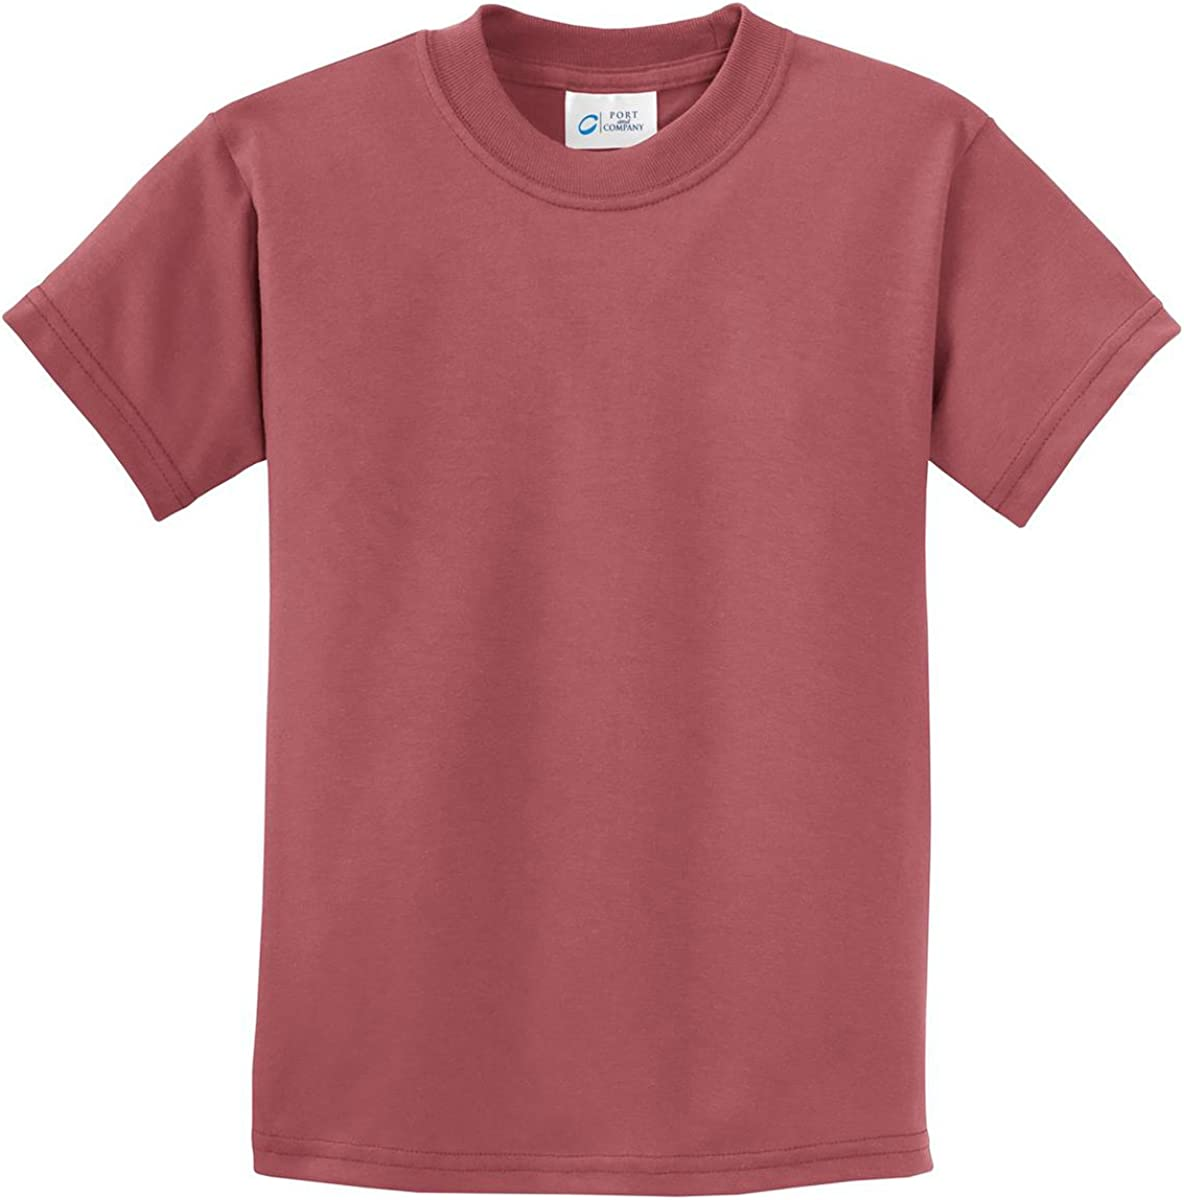 Port /& Company Youth Pigment-Dyed Tee PC099Y T Shirt Unisex